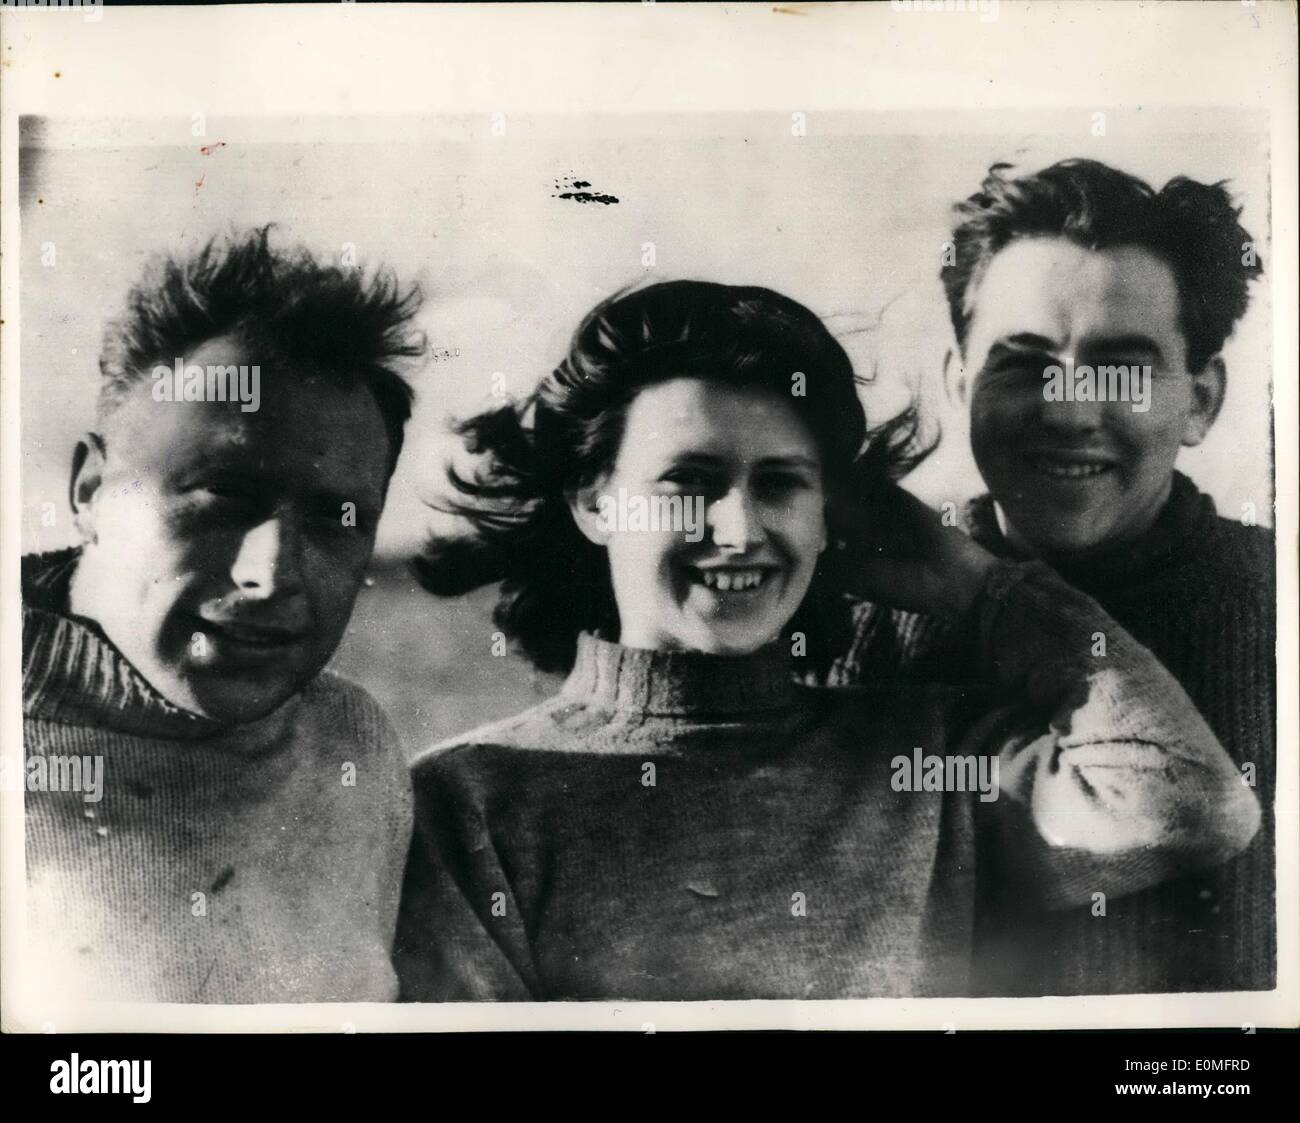 Mar. 03, 1955 - Three saved from sinking plane. Two men and a woman were saved from a sinking plane in a North Sea rescue last night. They were rescued by the Thames tanker, adaptivity, in heavy seas off Clacton - On sea. They were Mr. Leslie Anderson, Miss Sheila Martin and Mr. John Eadon who were returning in an Auster plane from a week-and in Paris, when they ran into bad weather, the tanker as he could. Photo shows Seen on board the Adaptivity, today are the three rescued week -and fliers - who in borrowed seaman's jerseys and dungarees, Mr. Leslie Anderson, Miss Sheila Martin and Mr - Stock Image